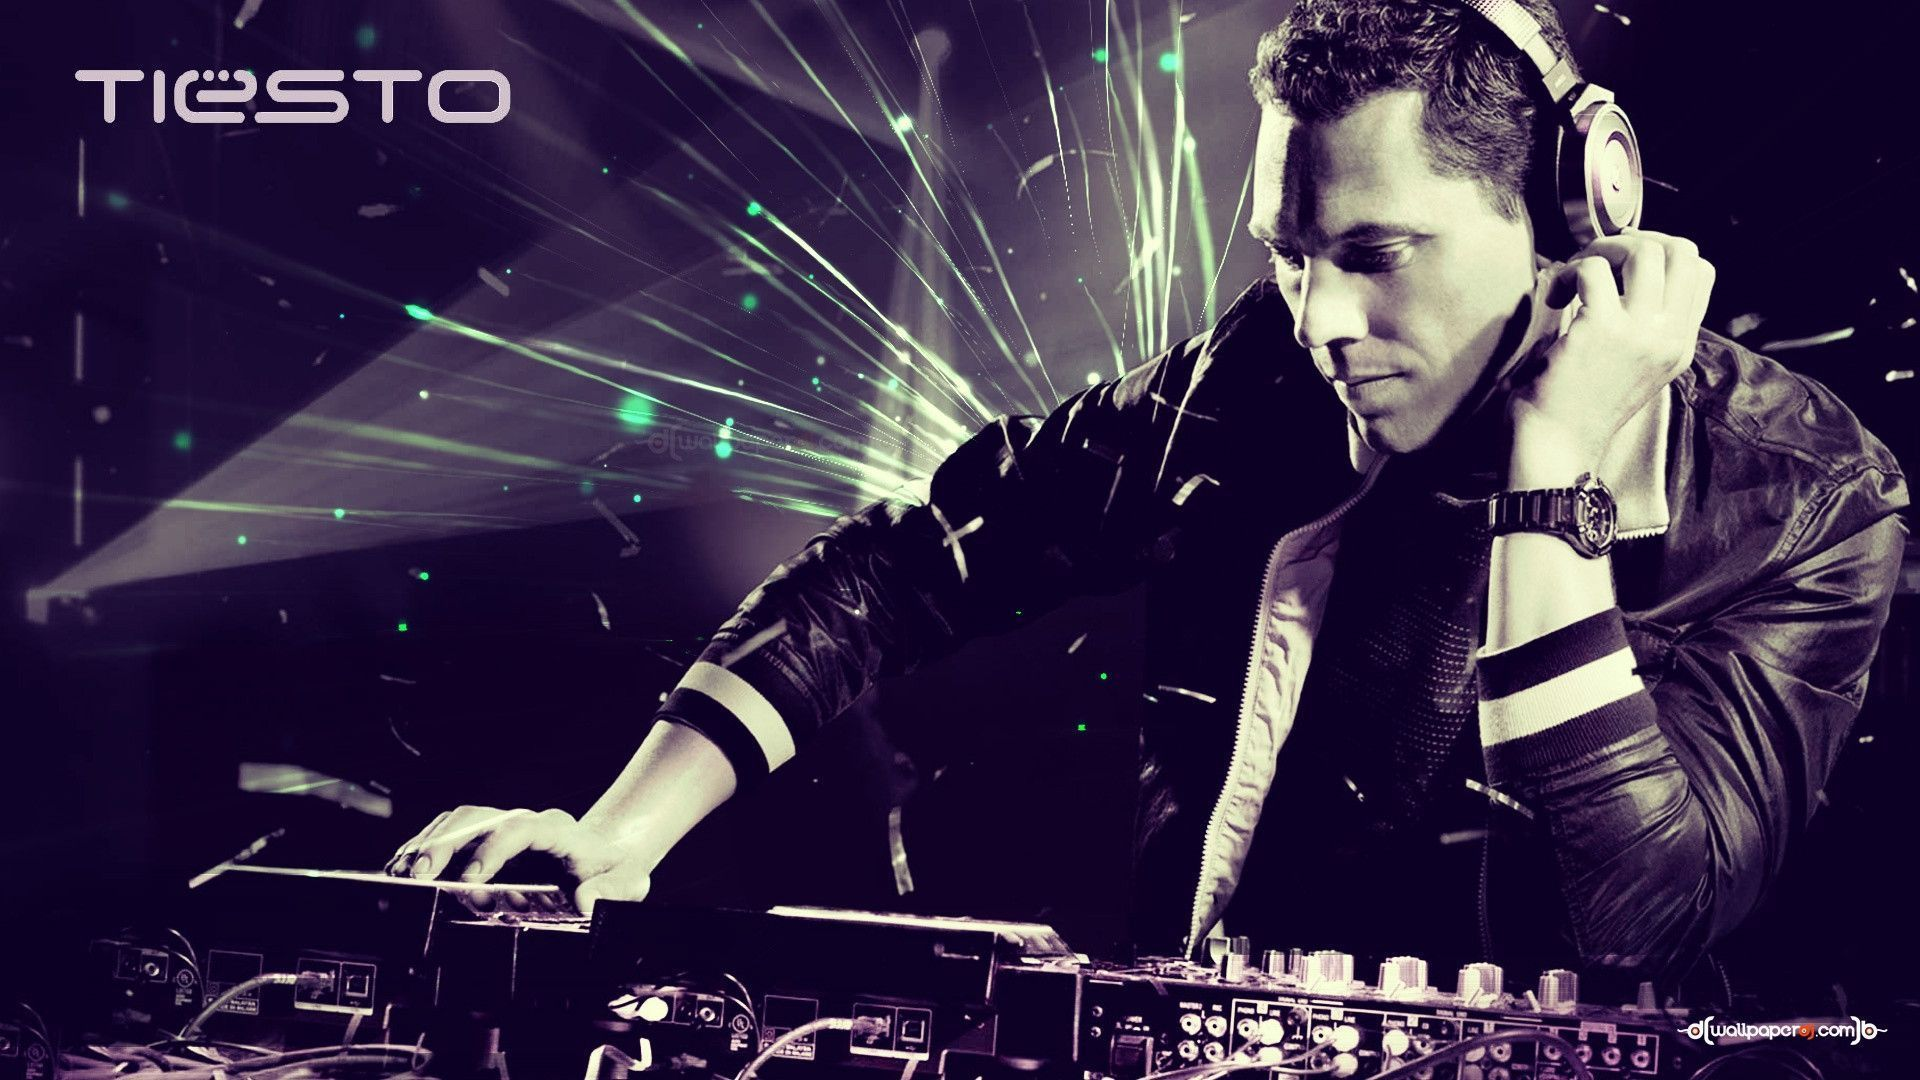 dj tiesto wallpapers 2015 - wallpaper cave | my favorites djs